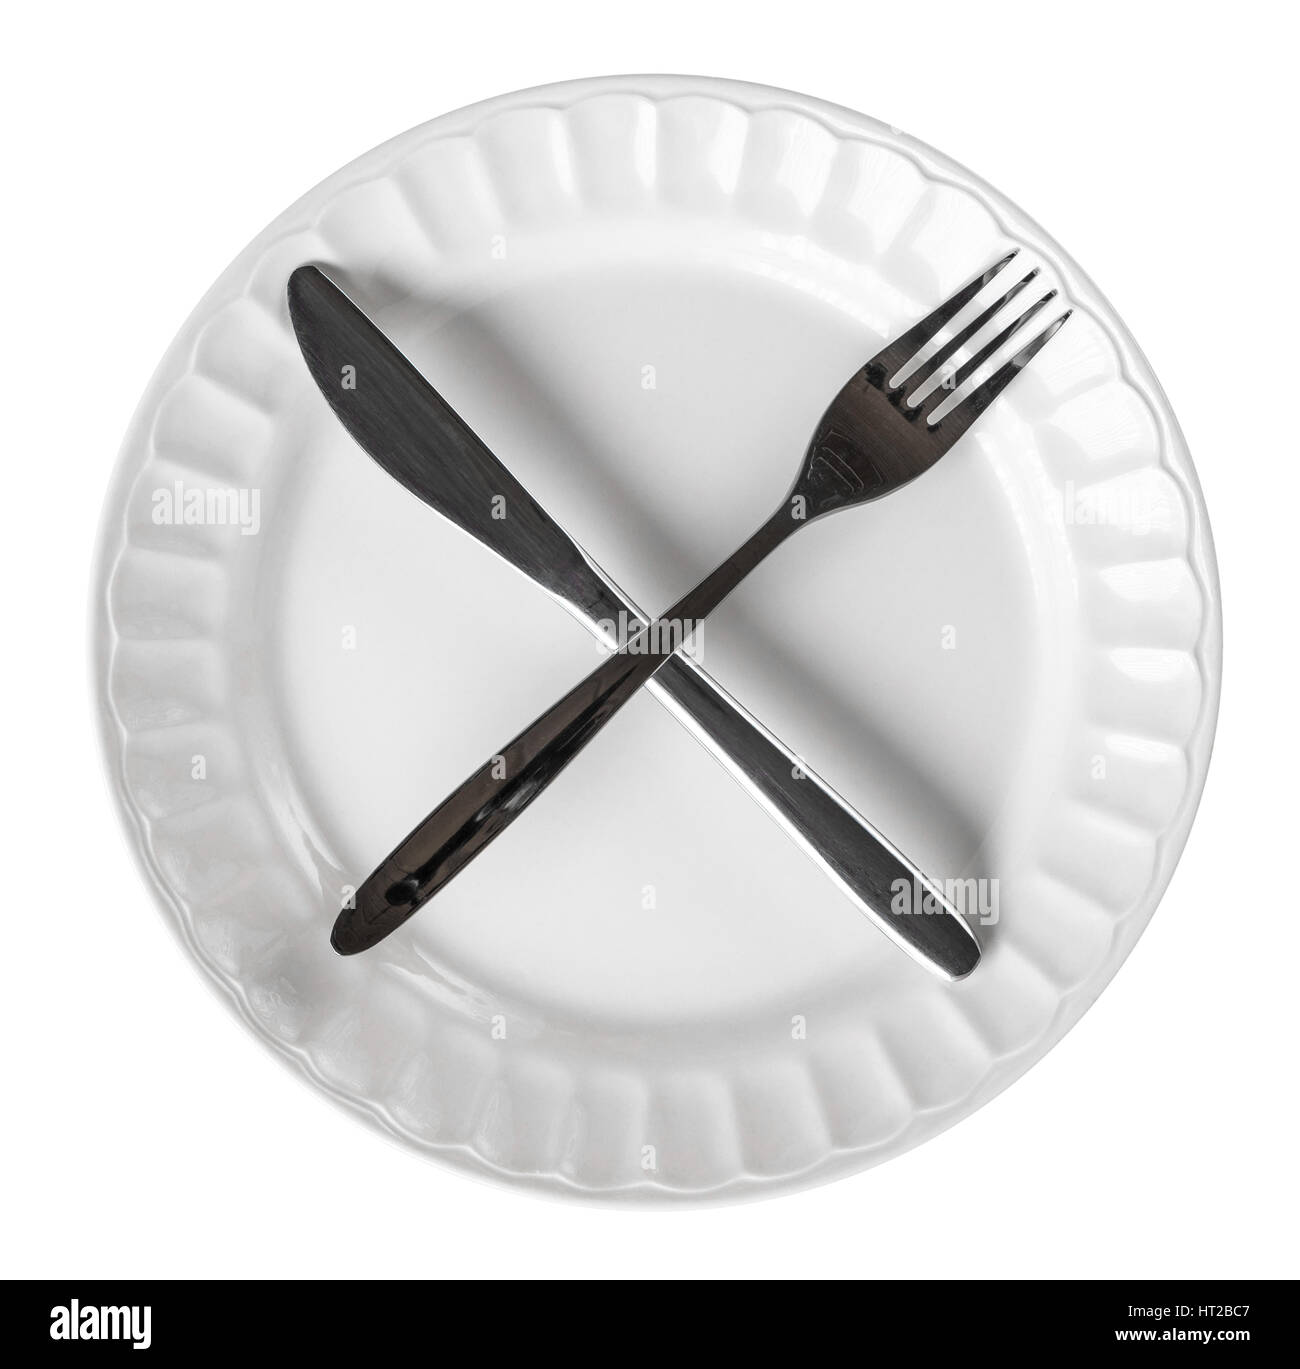 Intermittent Fasting Concept With Knife And Fork Showing Cross